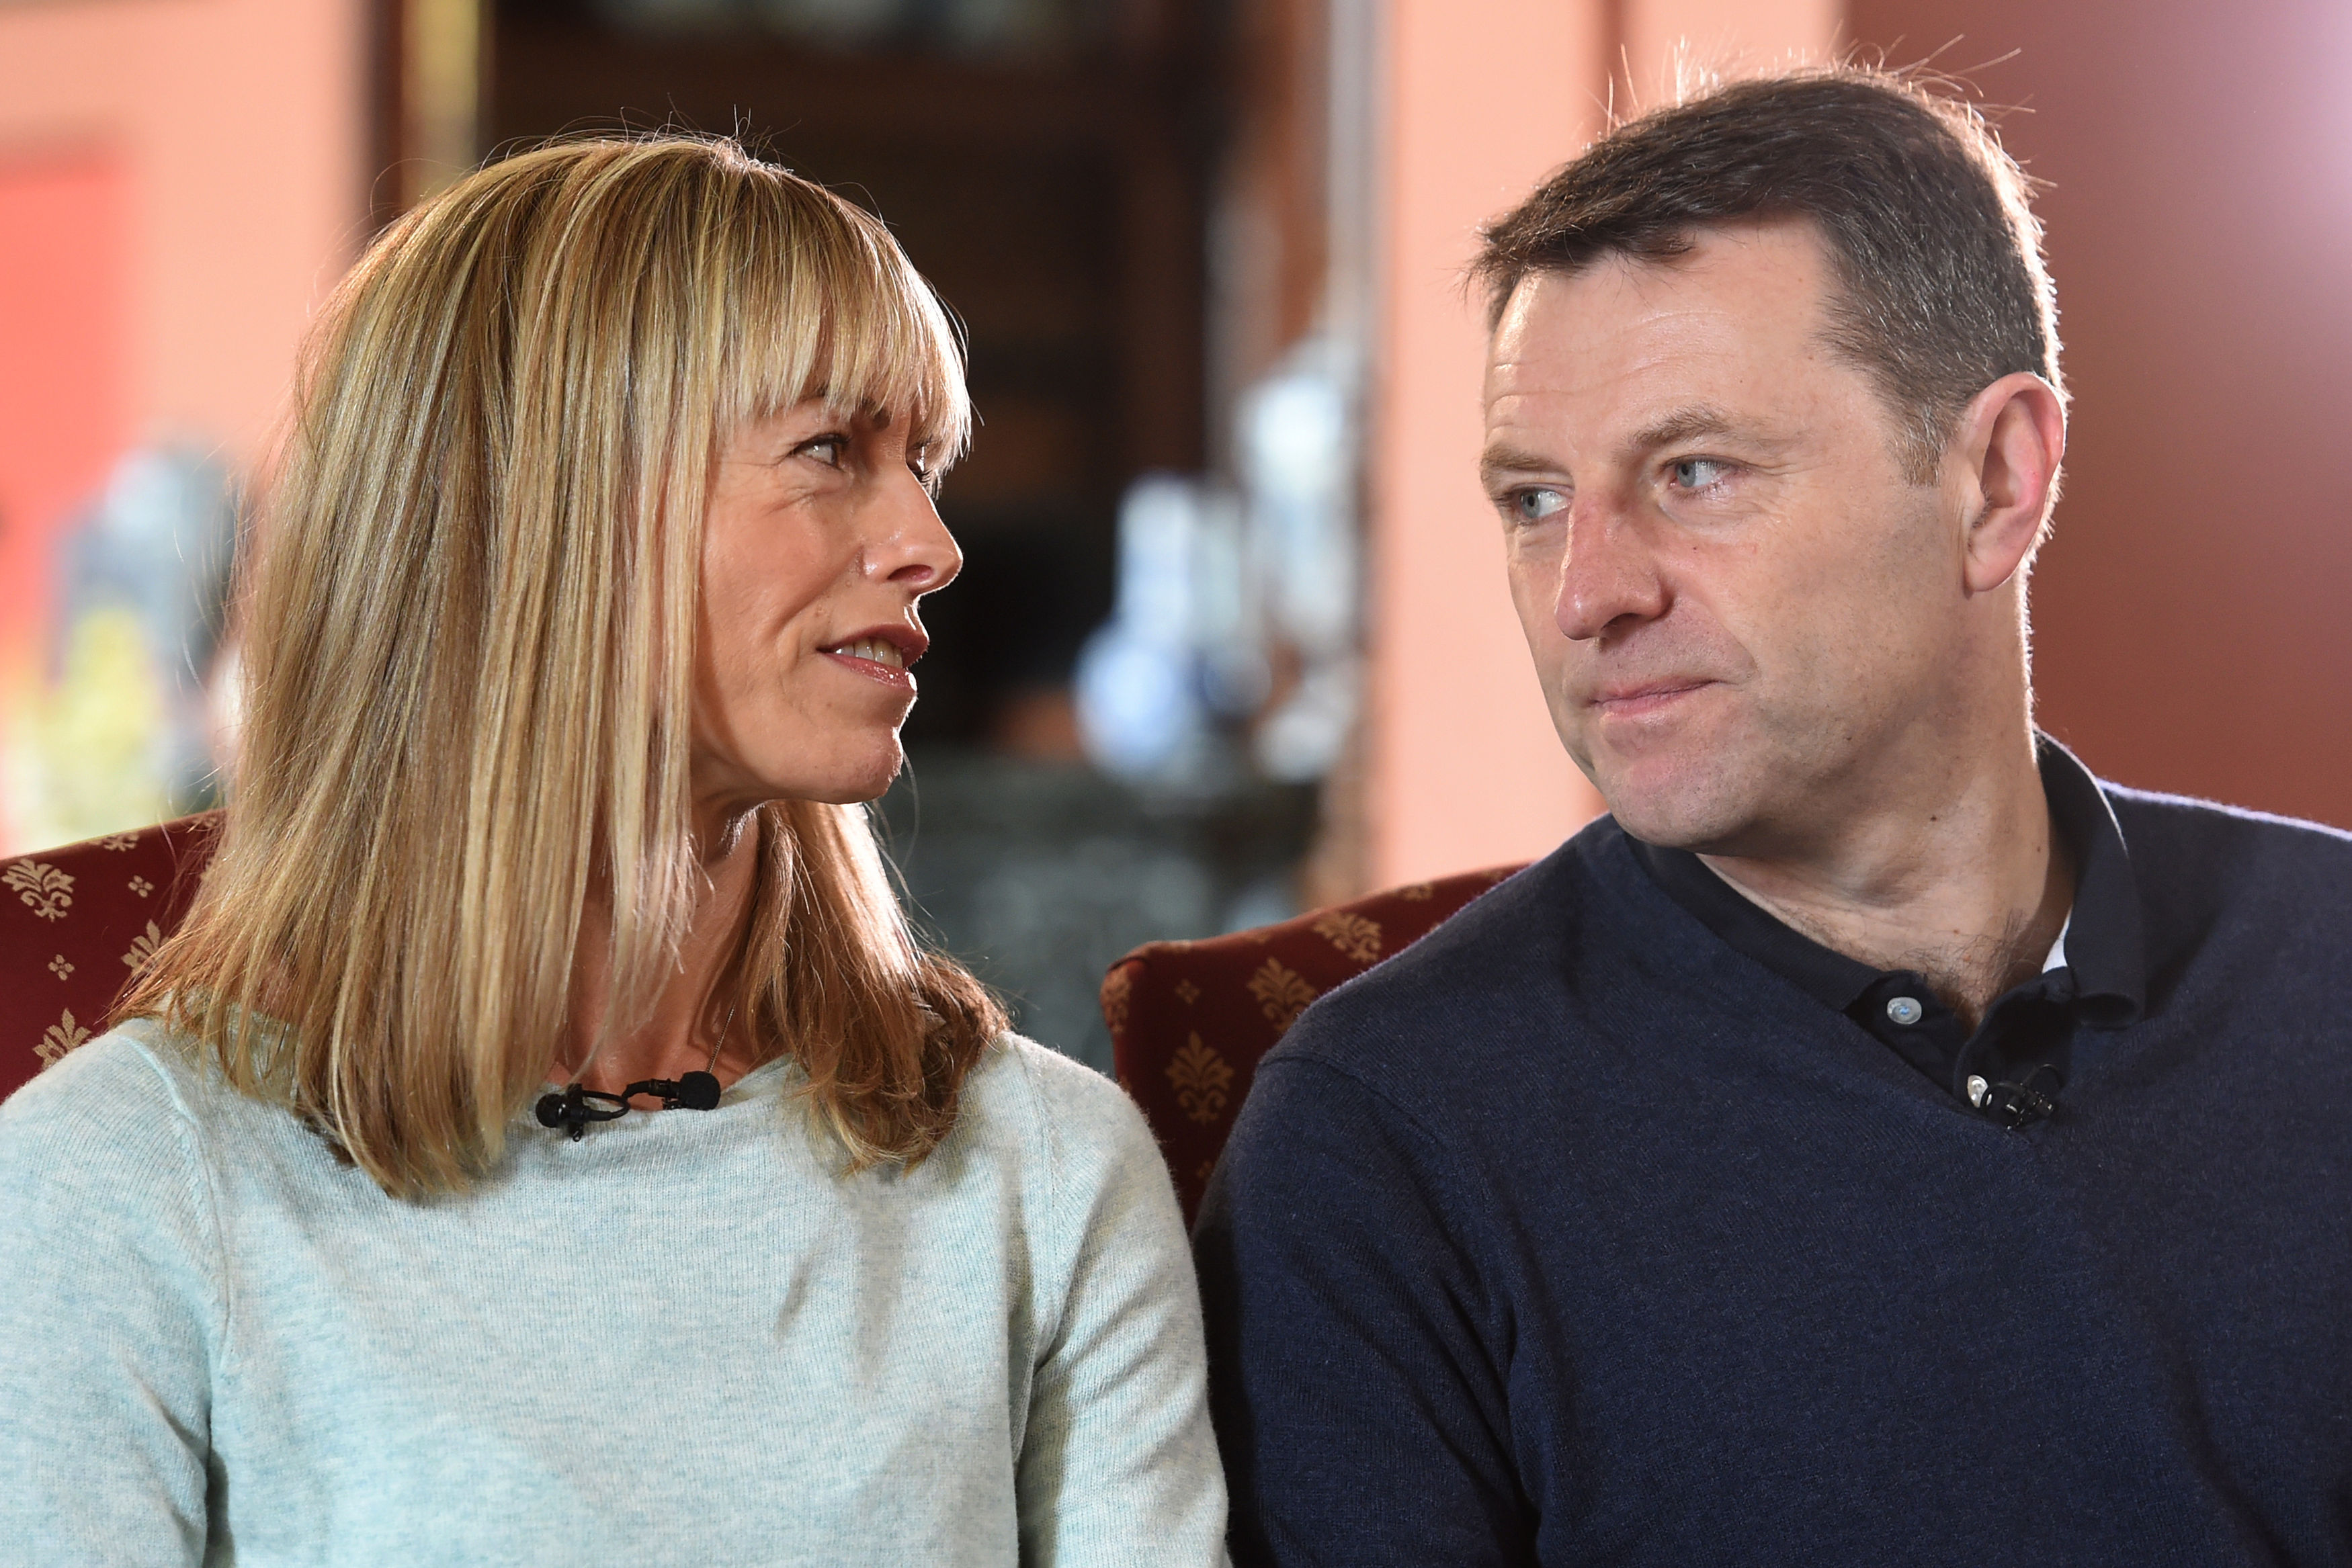 Kate and Gerry McCann. Credit: PA Images